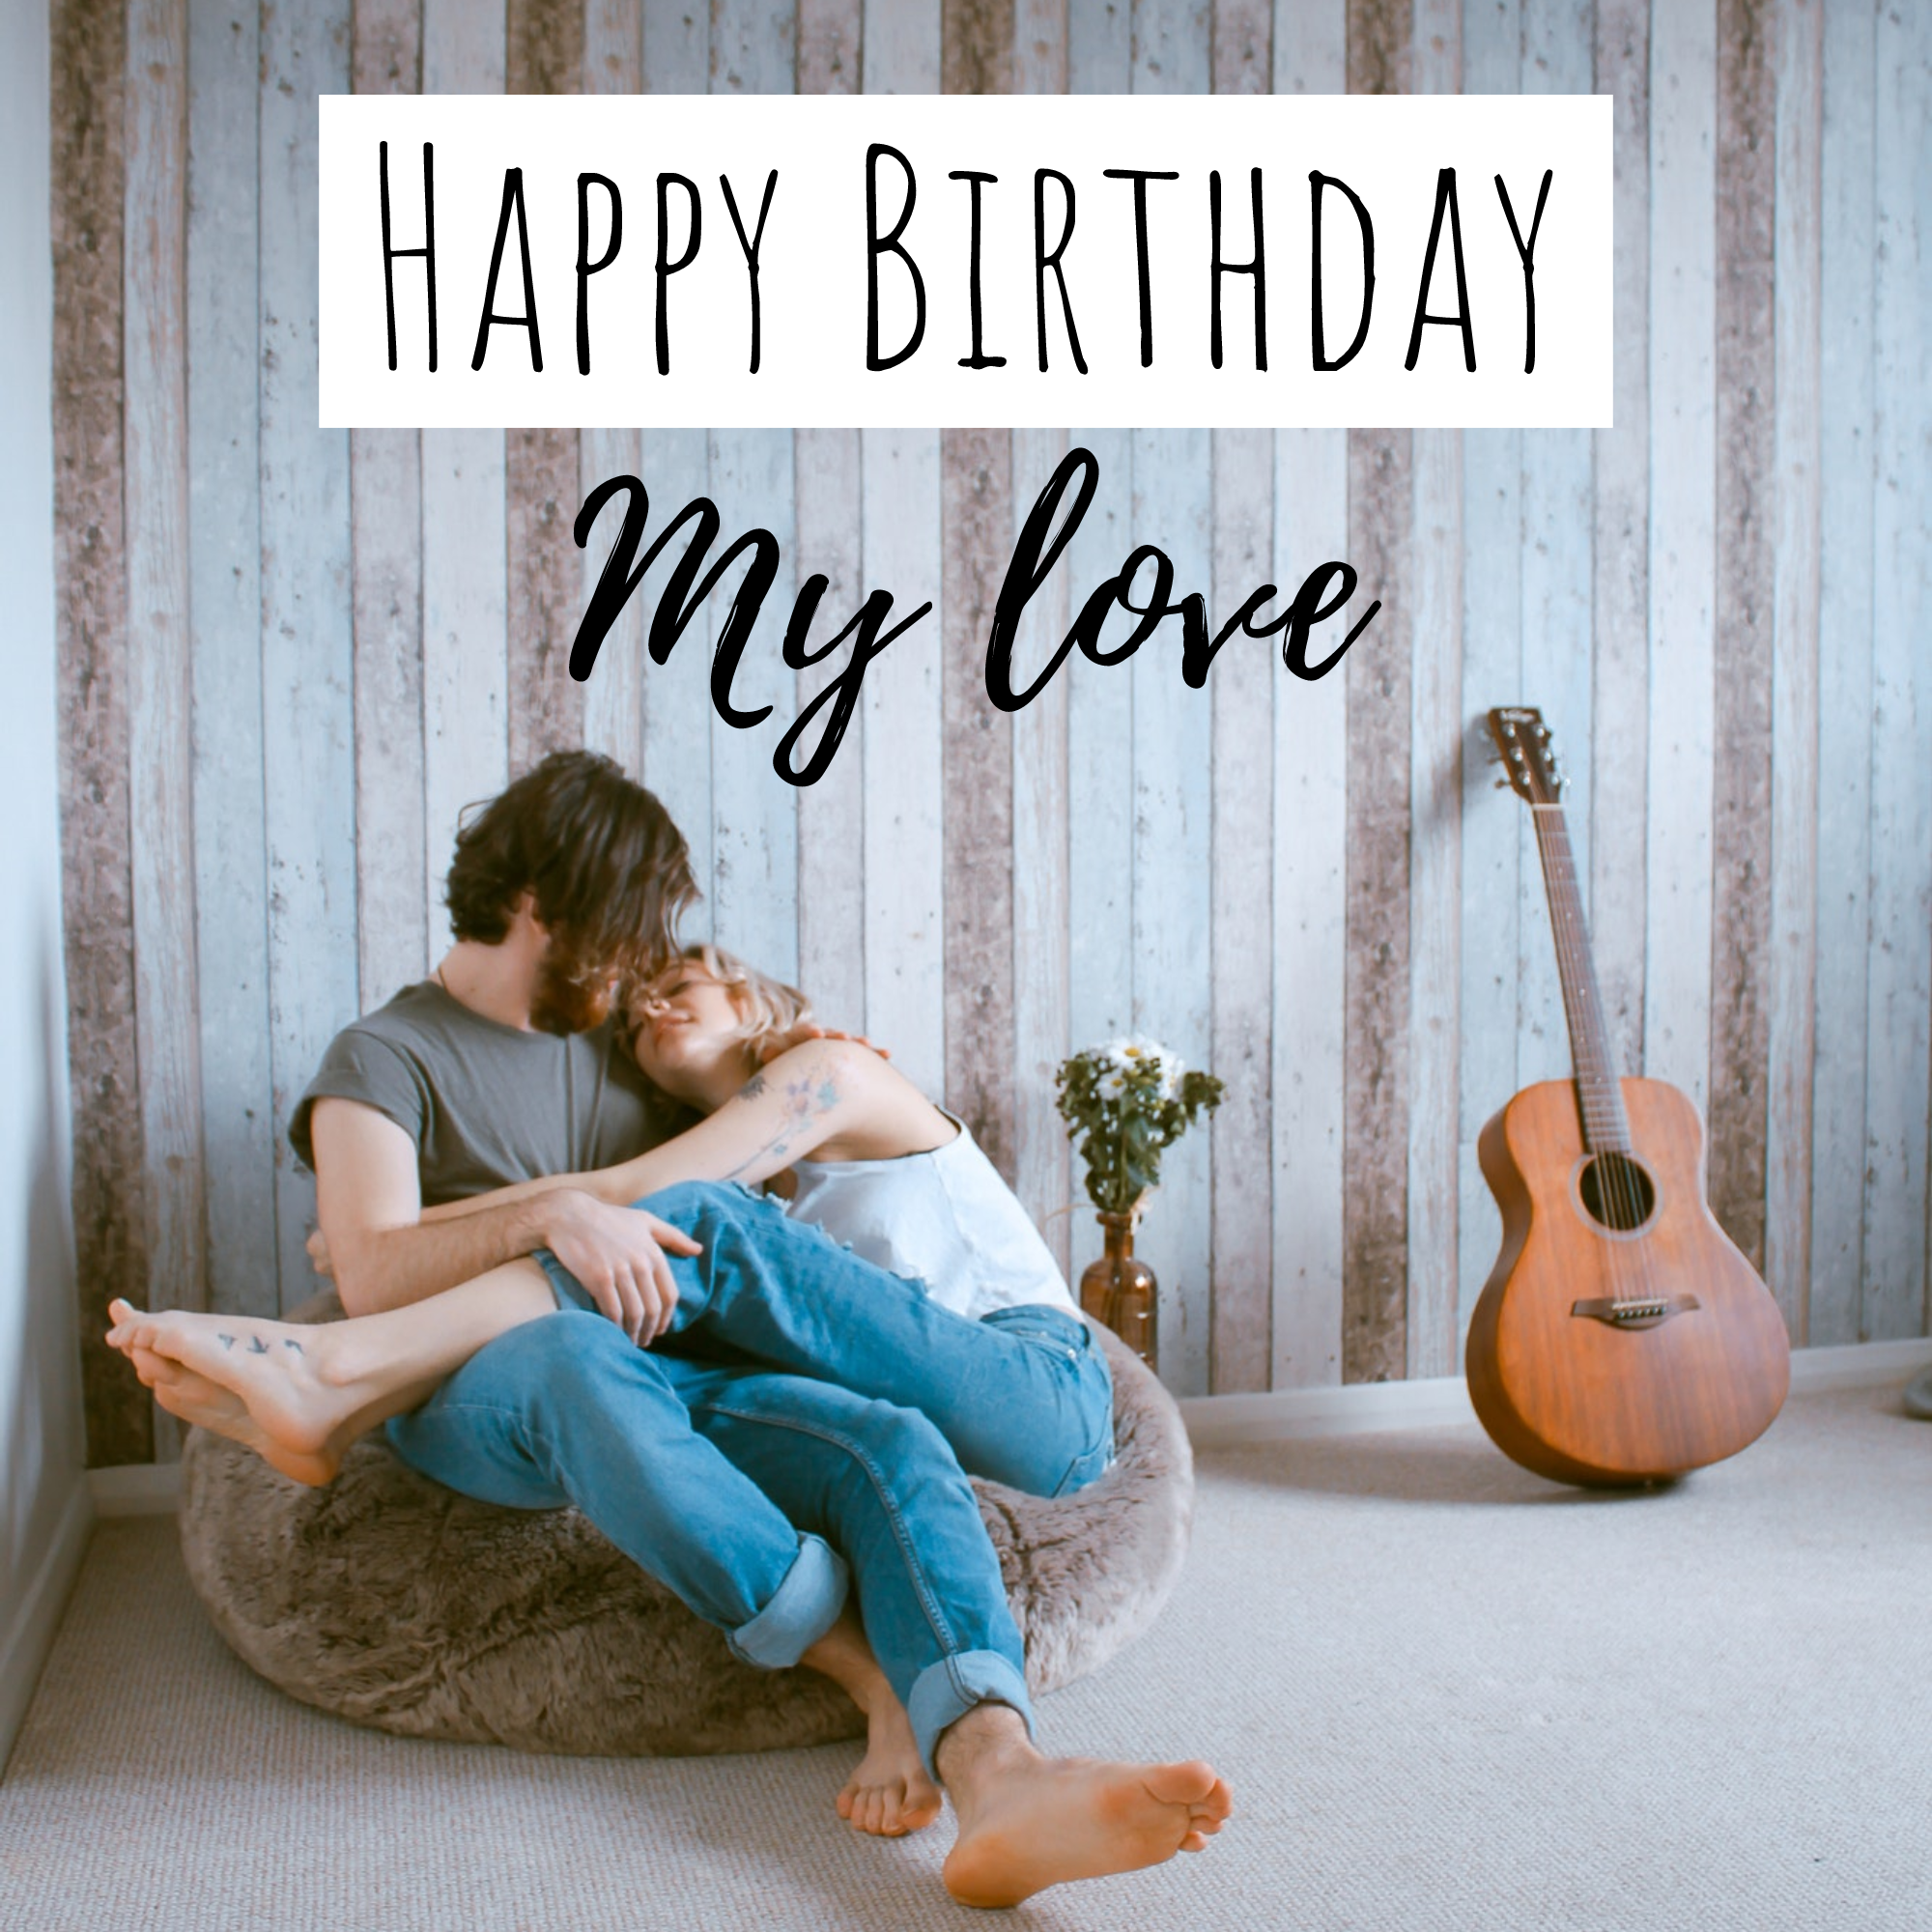 HAPPY BIRTHDAY 🎉 20 Adorable story ideas for Instagram 20